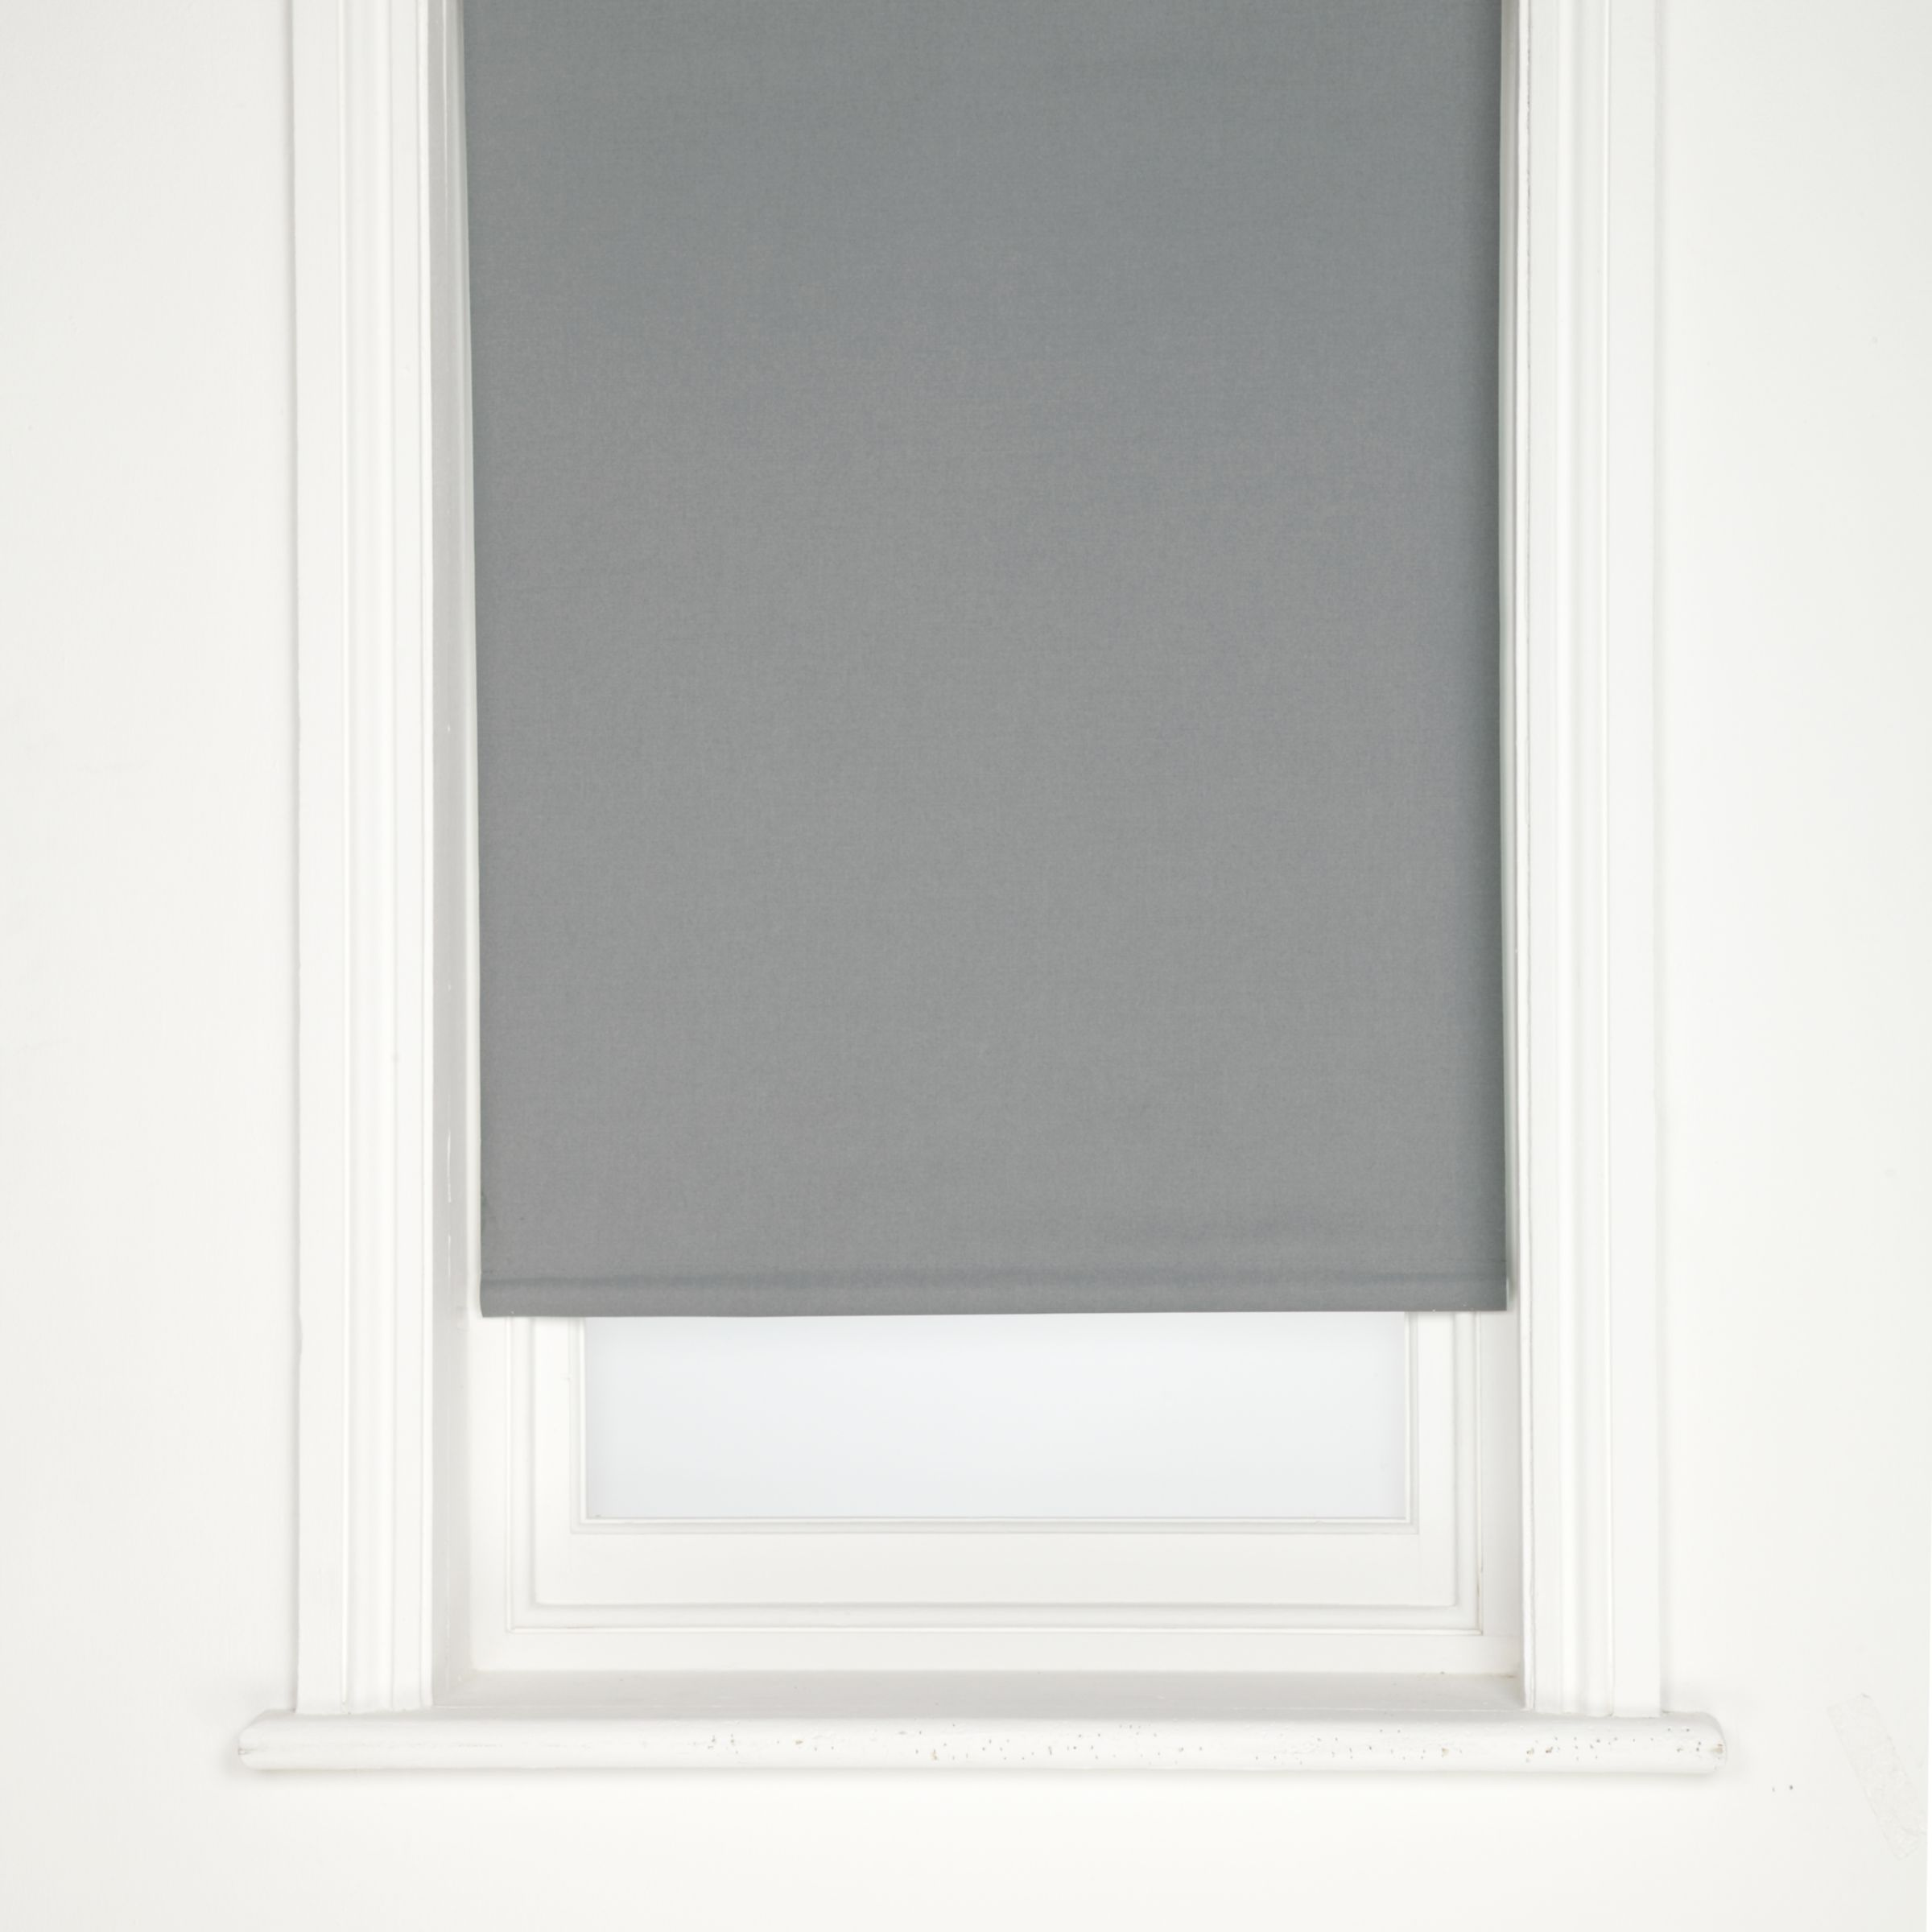 John Lewis Blackout Roller Blinds, Steel